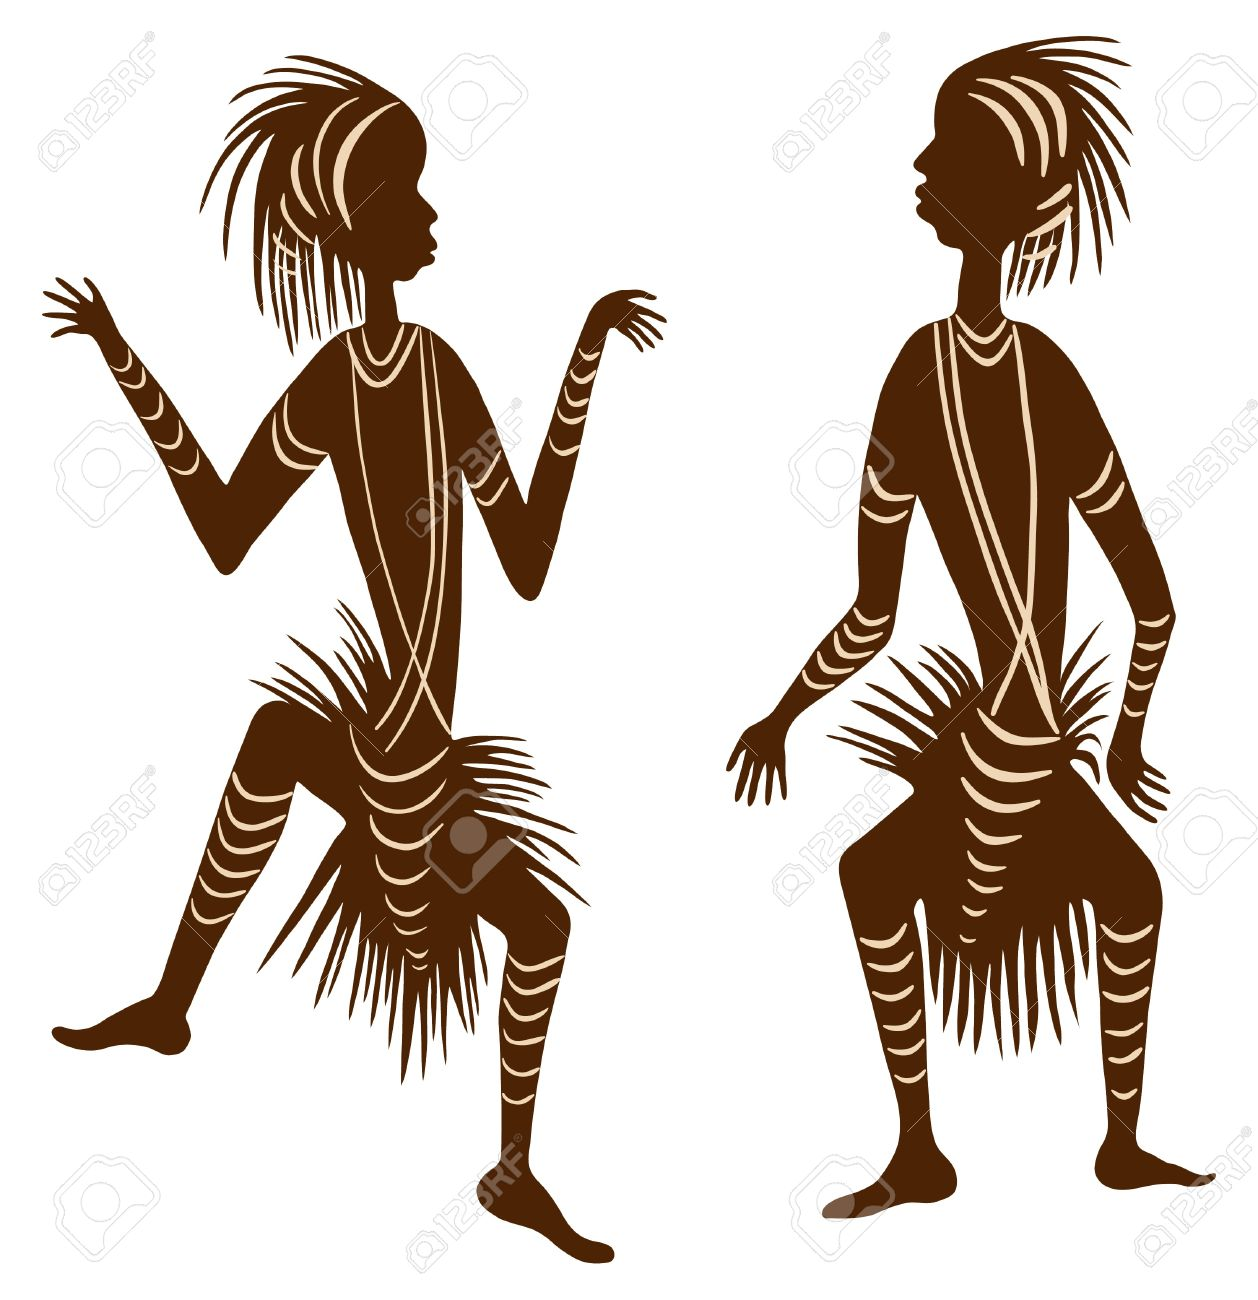 African clipart traditional. Tribal dance related coloring